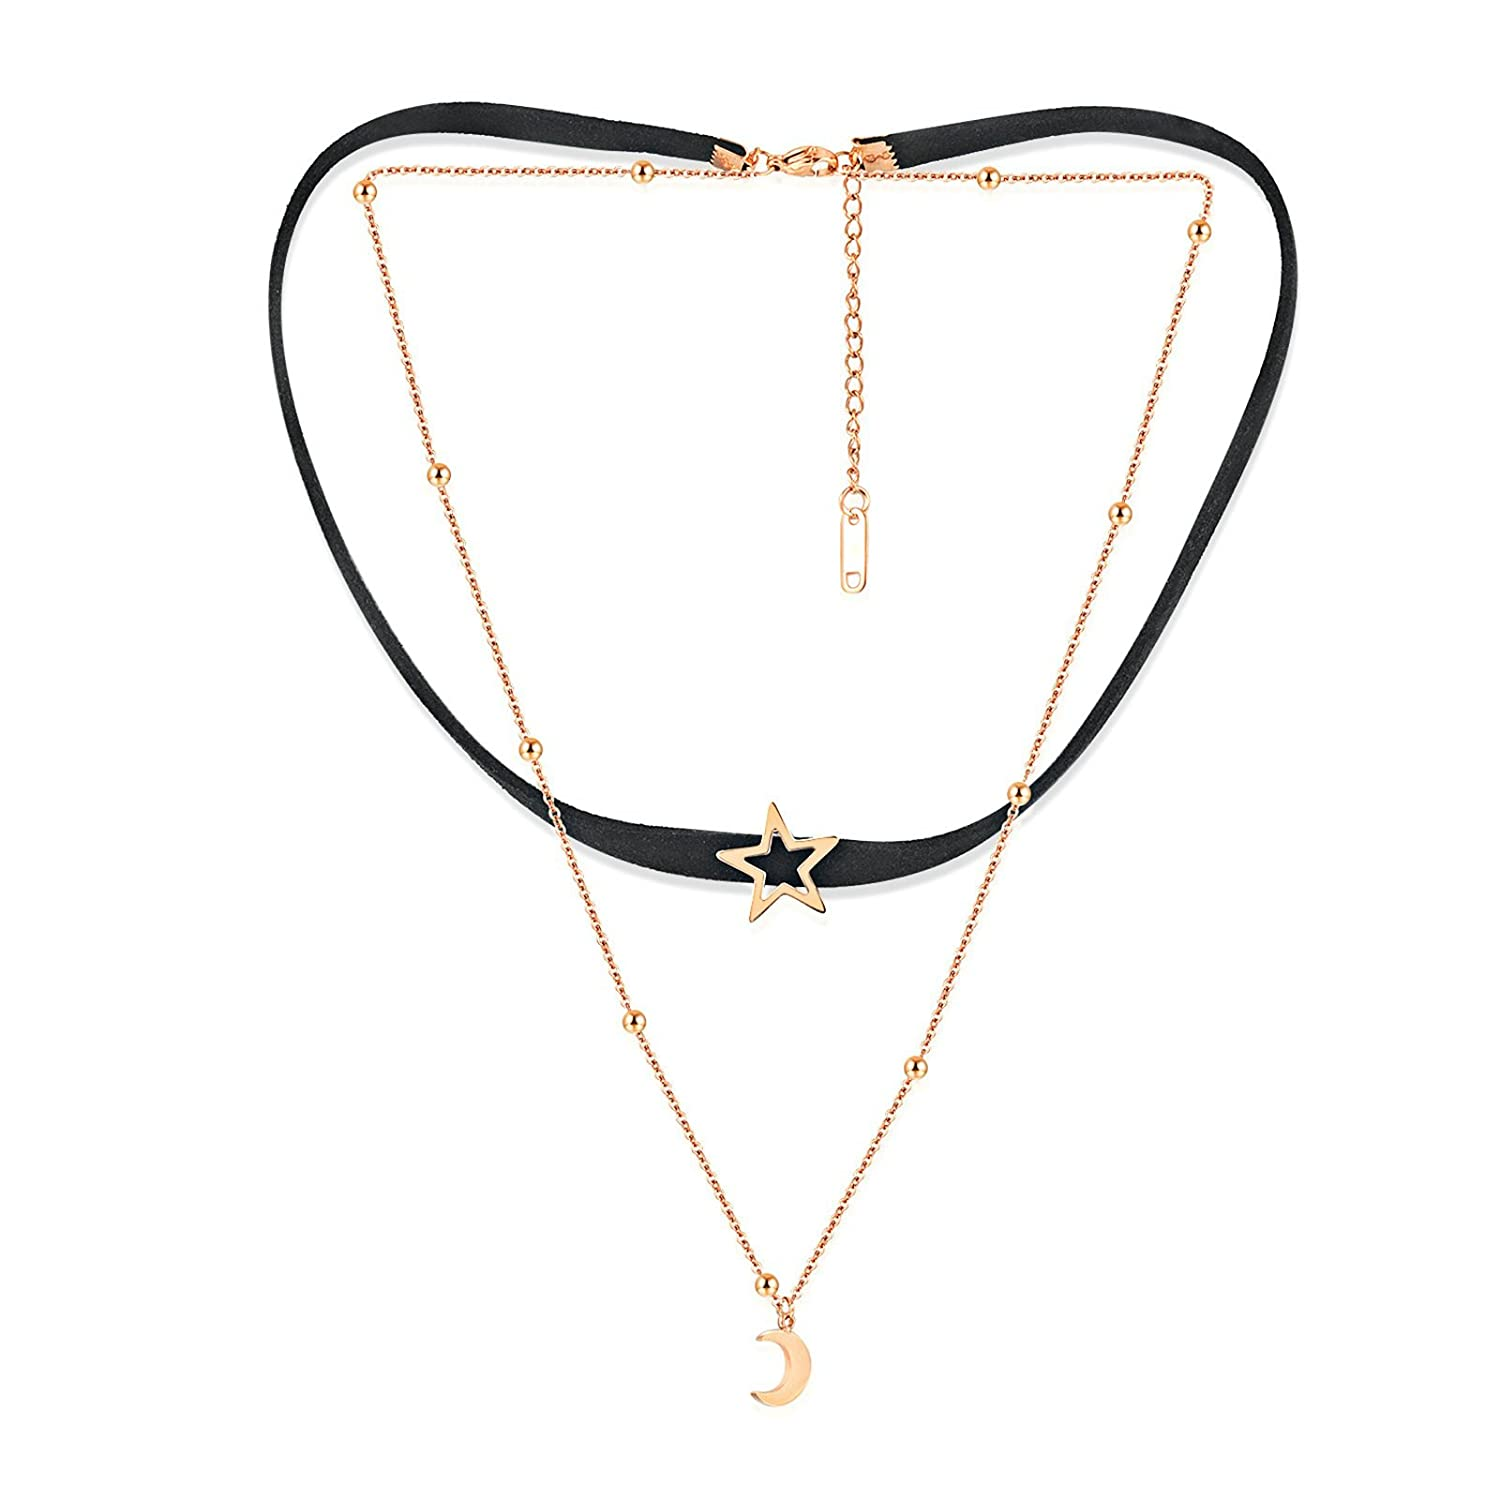 MoAndy Necklace Chain Leather Necklace for Women Flannelette Double Star Moon Black Rose Gold Chain Length 37+5.5CM